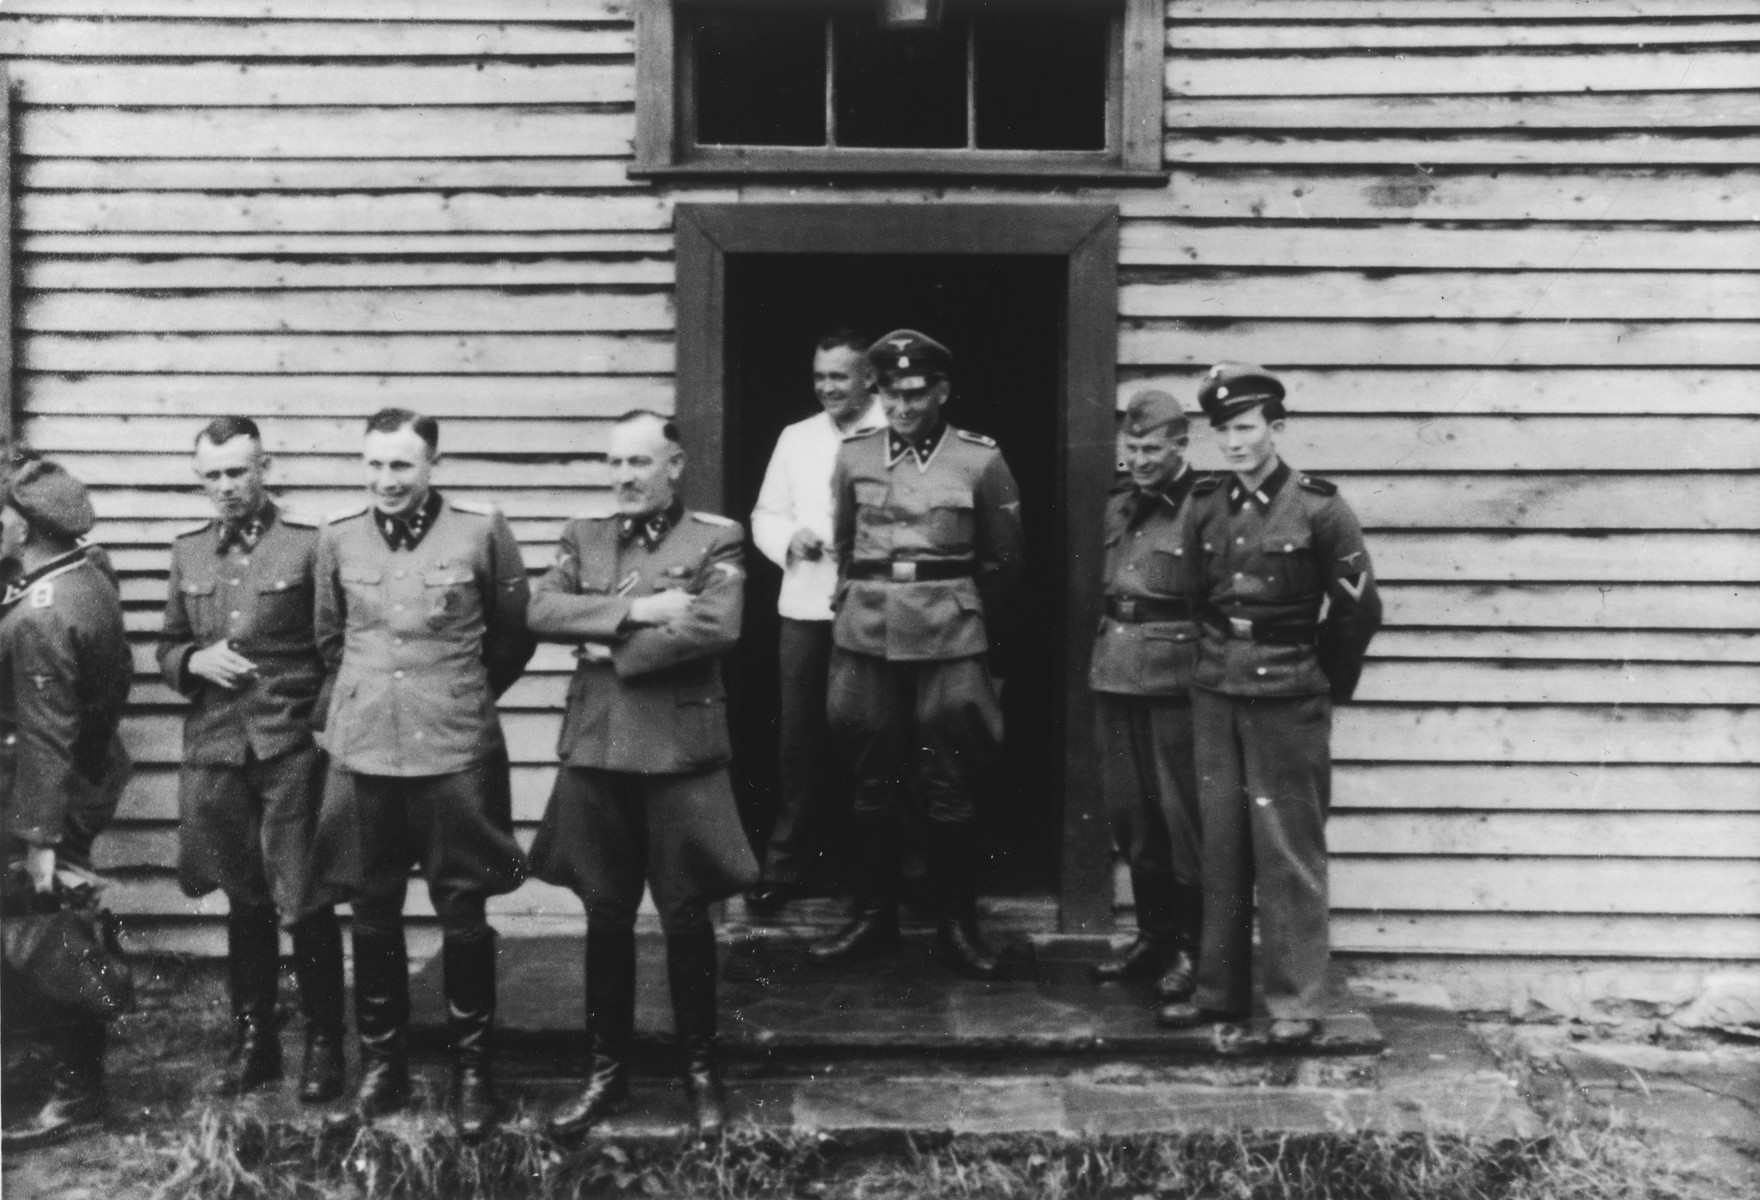 A group of Nazi officers stand in front of a building in Solahuette, the SS retreat outside of Auschwitz.  Pictured facing the camera, second from the left, is Karl Hoecker.  Next to him is SS-Obersturmführer Max Sell, between 1943 and 1945 first Arbeitseinsatzführer in Auschwitz and afterwards in Mittelbau-Dora.   [Based on the officers visiting Solahutte, we surmise that the photographs were taken to honor Rudolf Hoess who completed his tenure as garrison senior on July 29.]